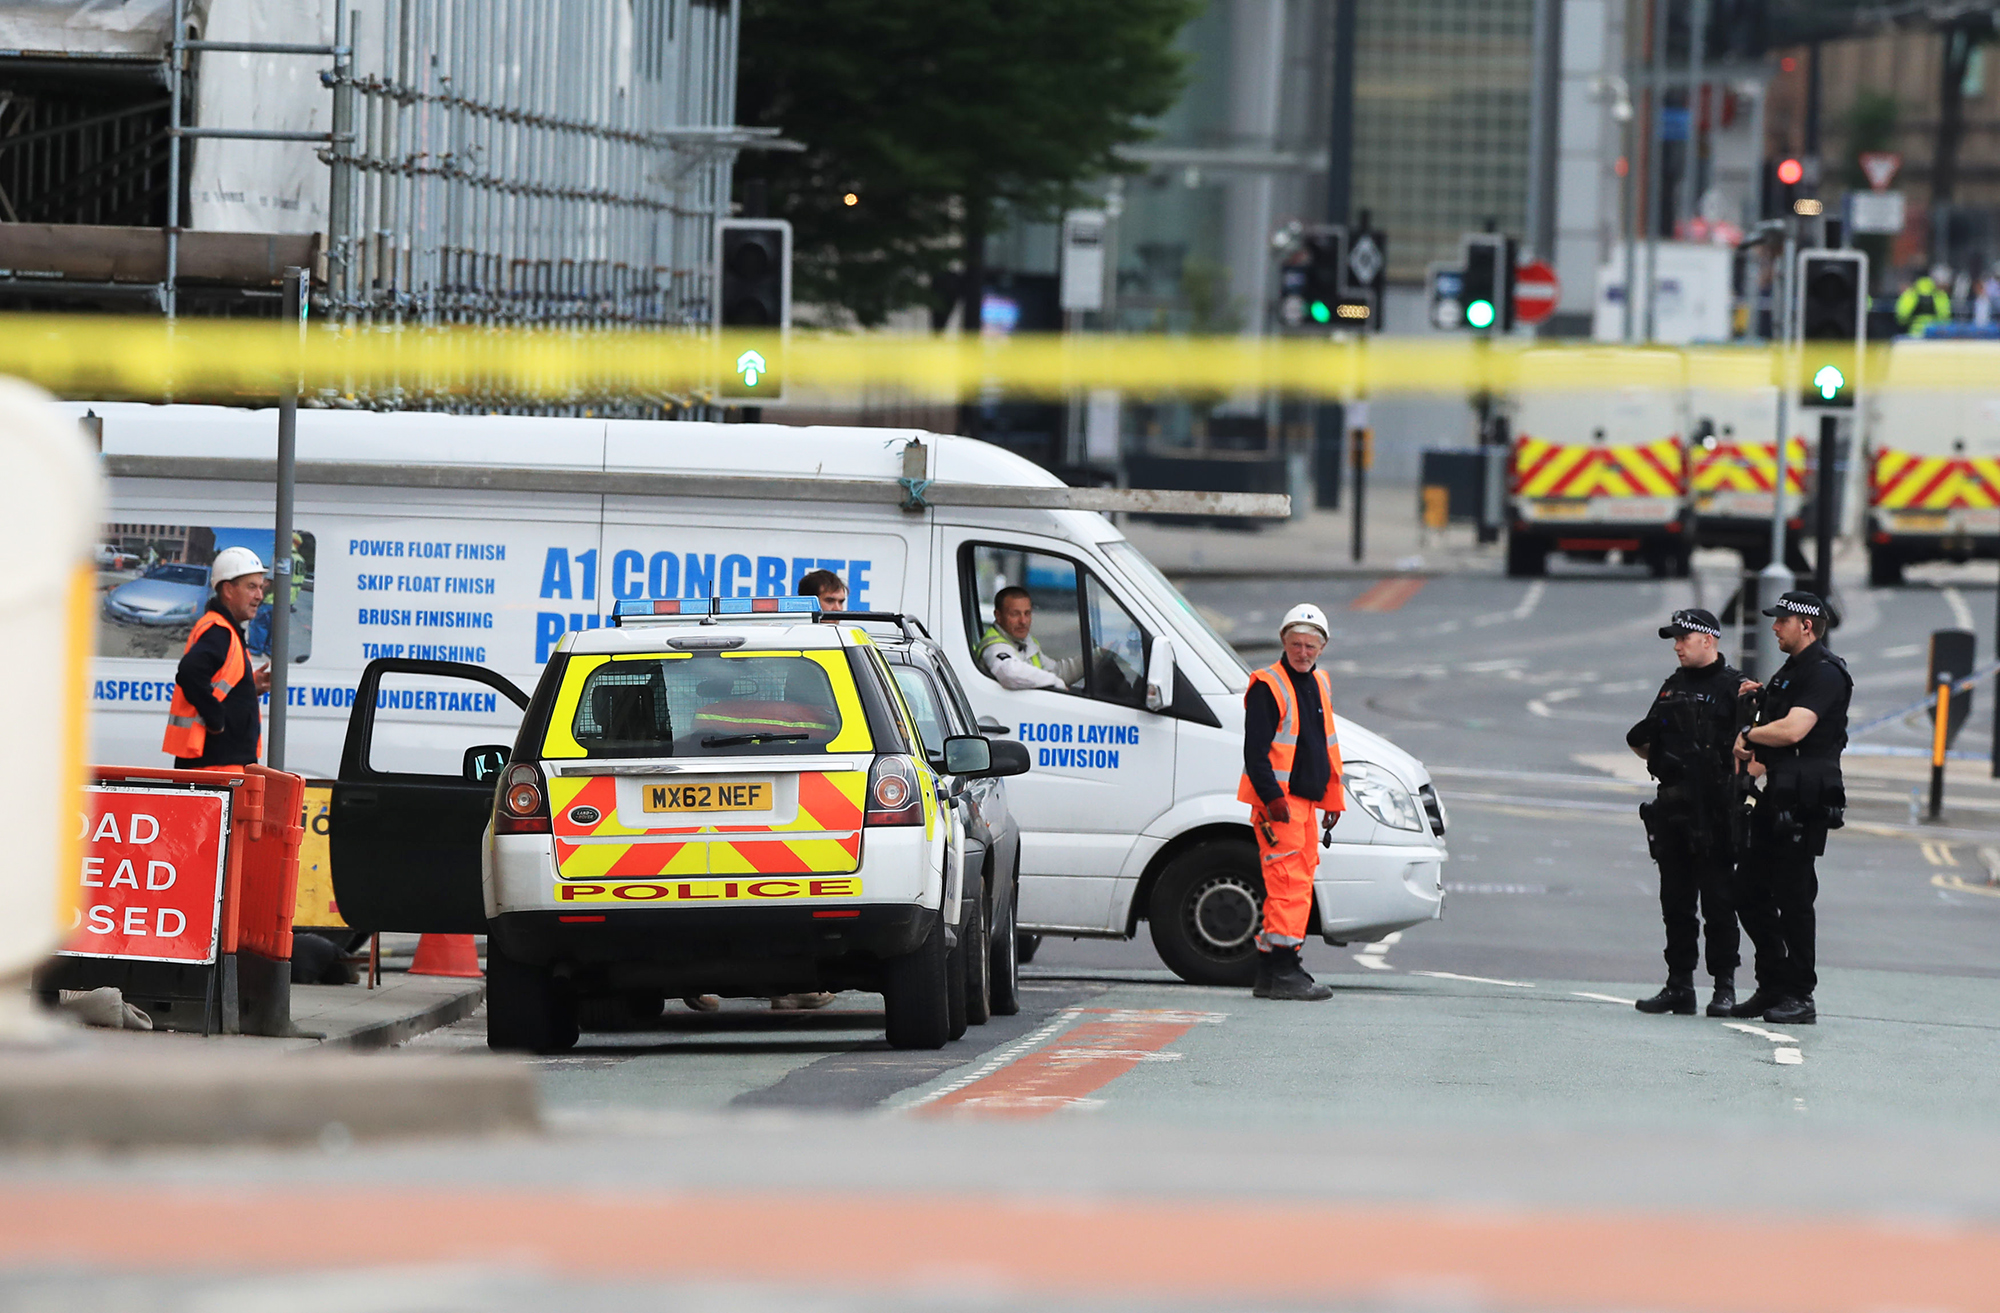 Police near the Manchester Arena the morning after an attack at the end of a concert by Ariana Grande left 22 dead, on May 23, 2017.